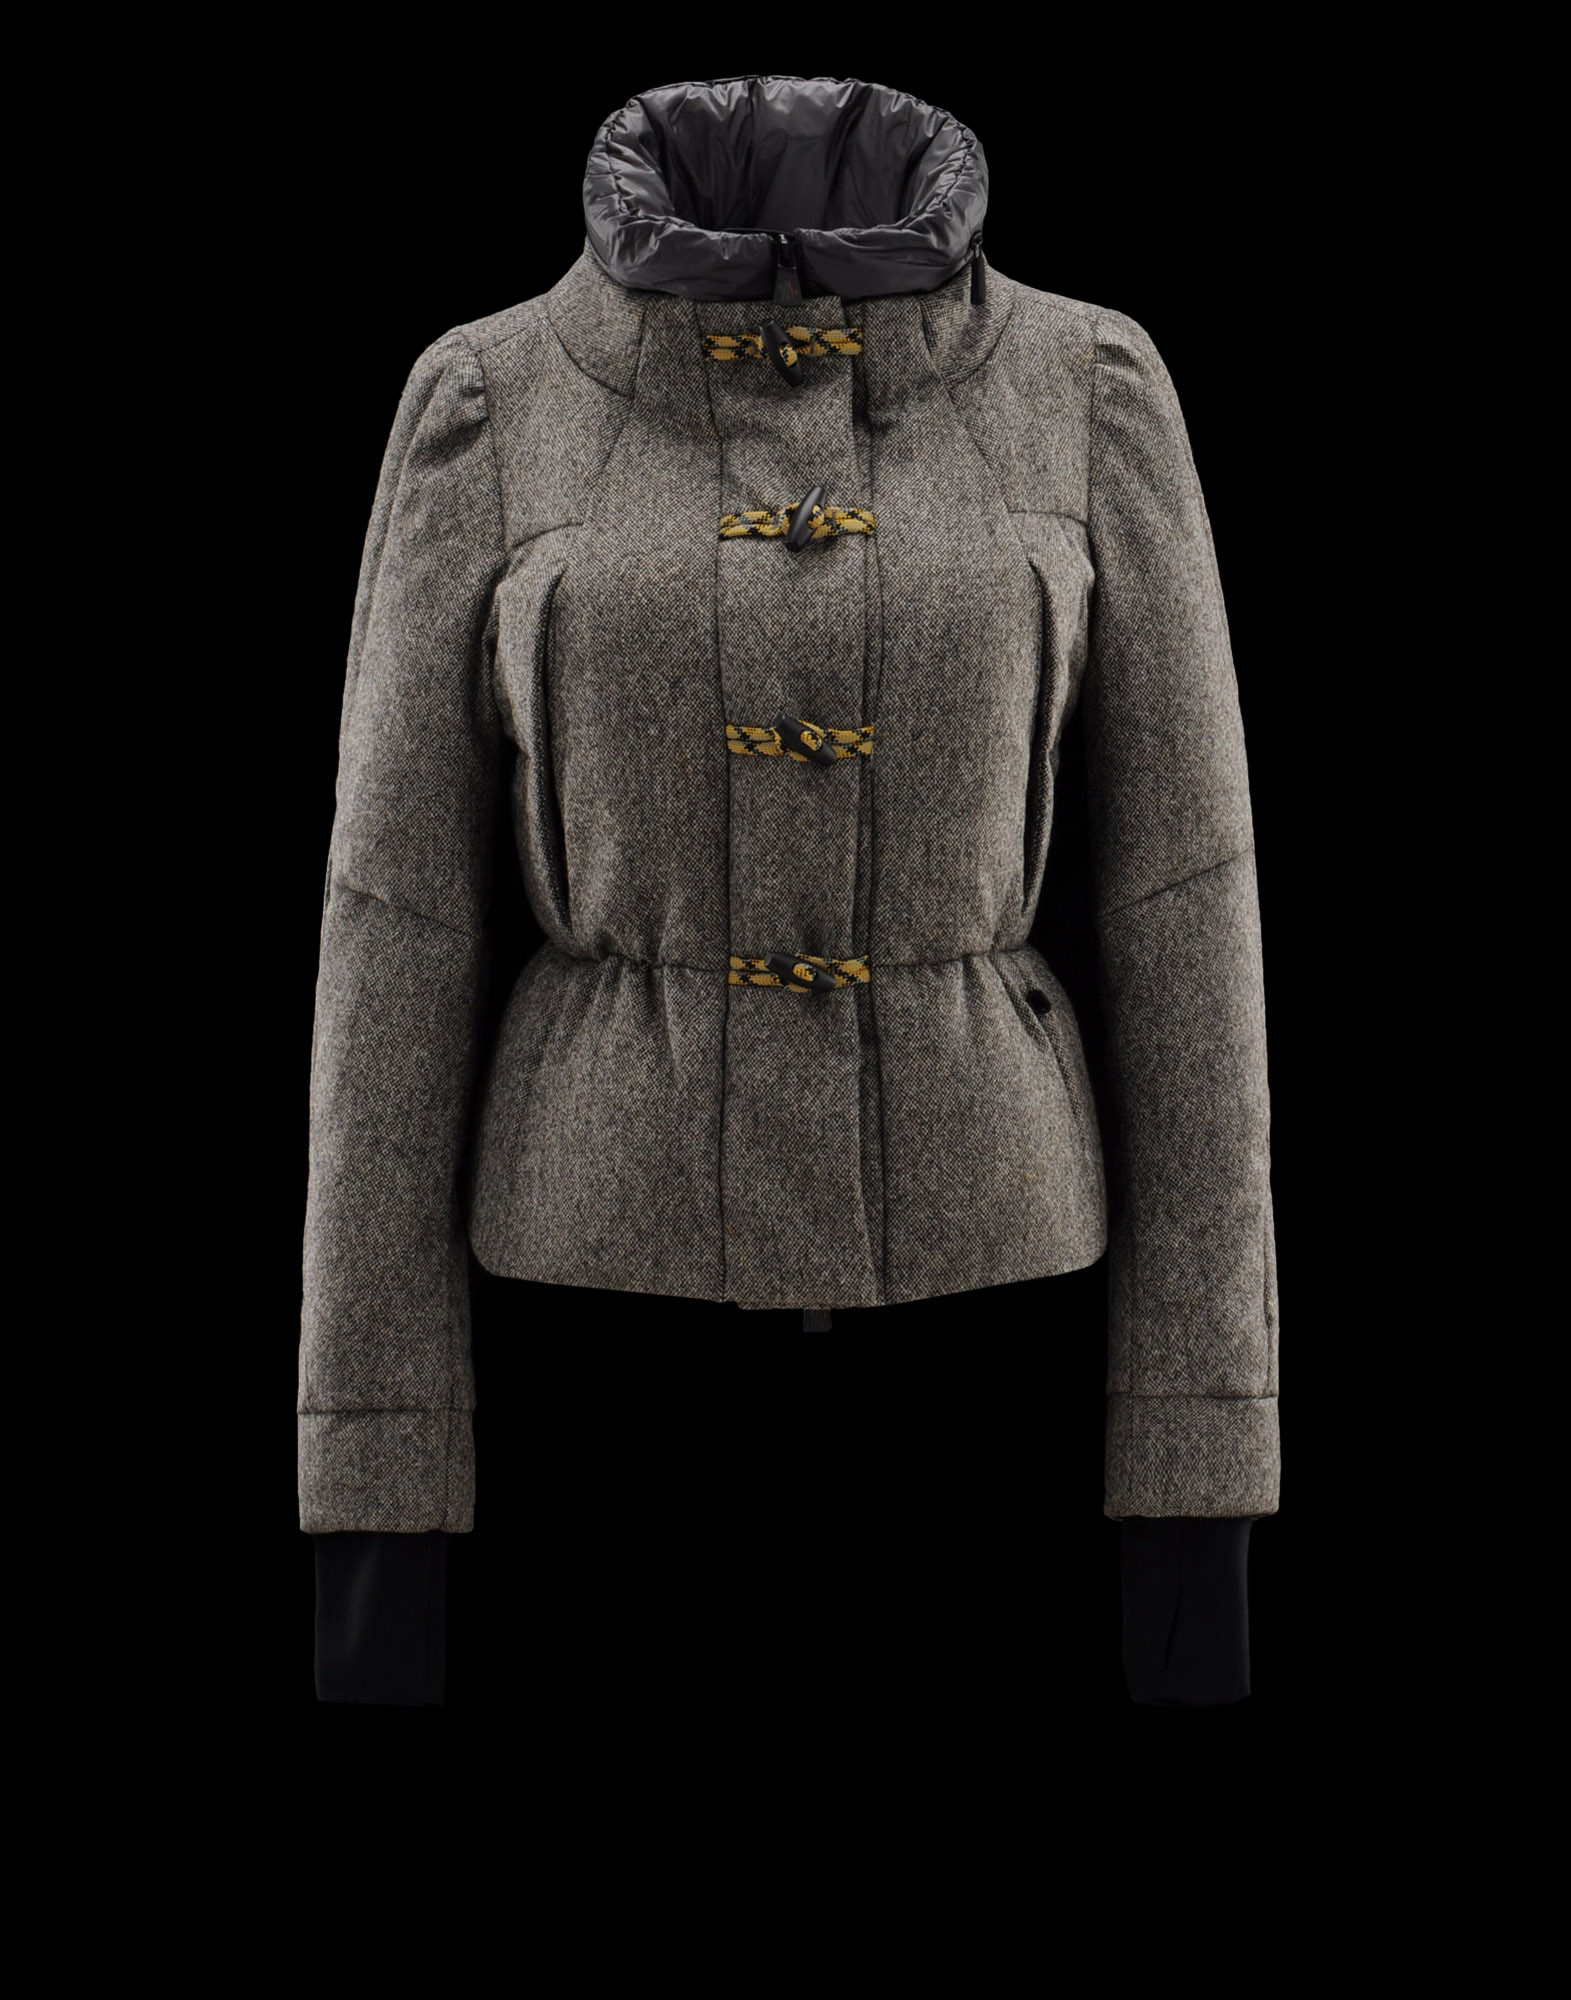 MONCLER GRENOBLE Women - Fall-Winter 13/14 - OUTERWEAR - Jacket - Medel